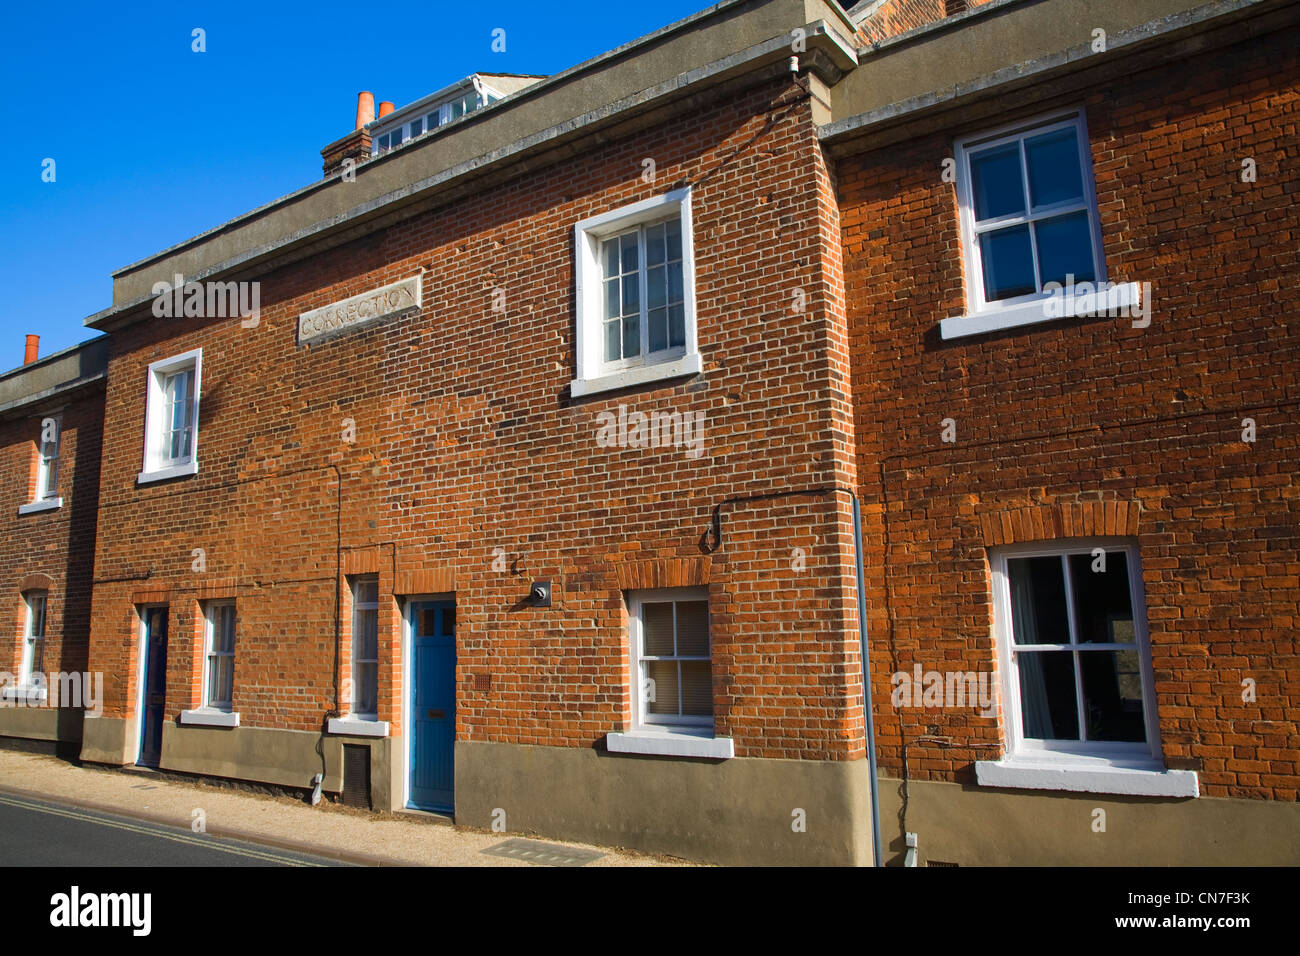 House of Correction early nineteenth century prison building, Woodbridge, Suffolk, England - Stock Image